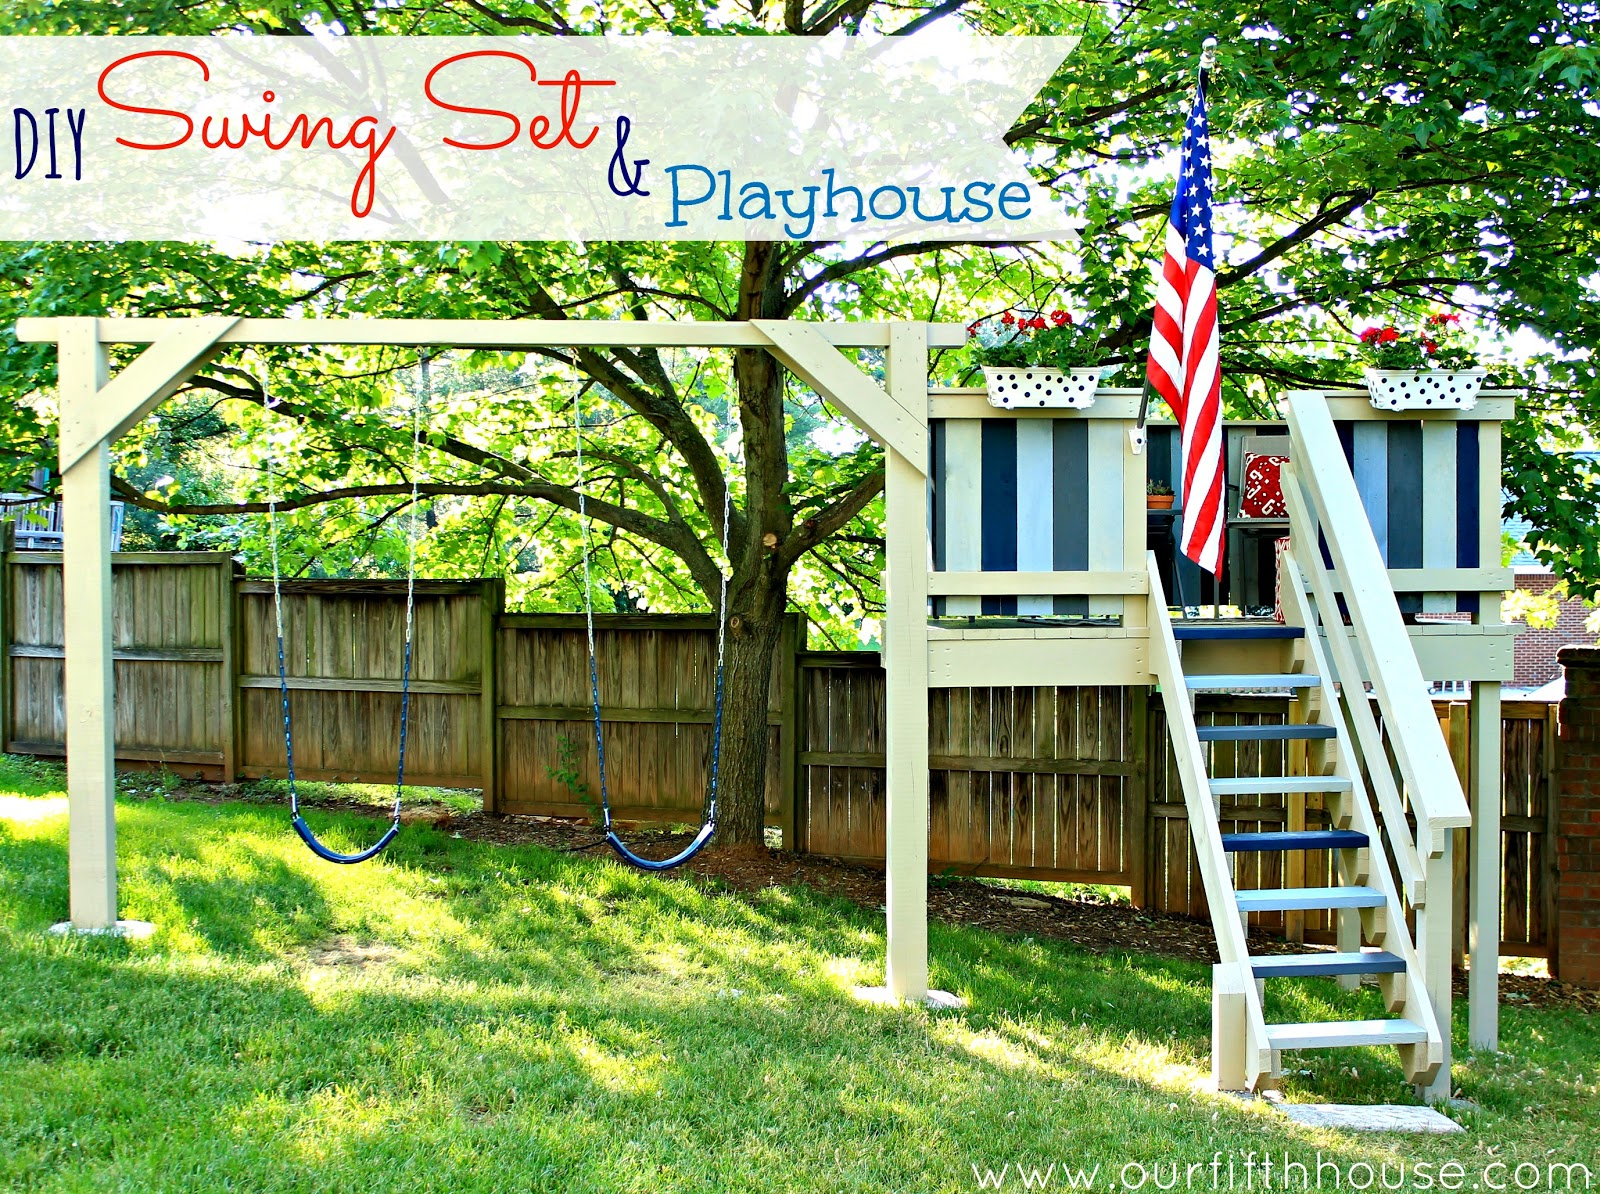 our fifth house diy swing set playhouse